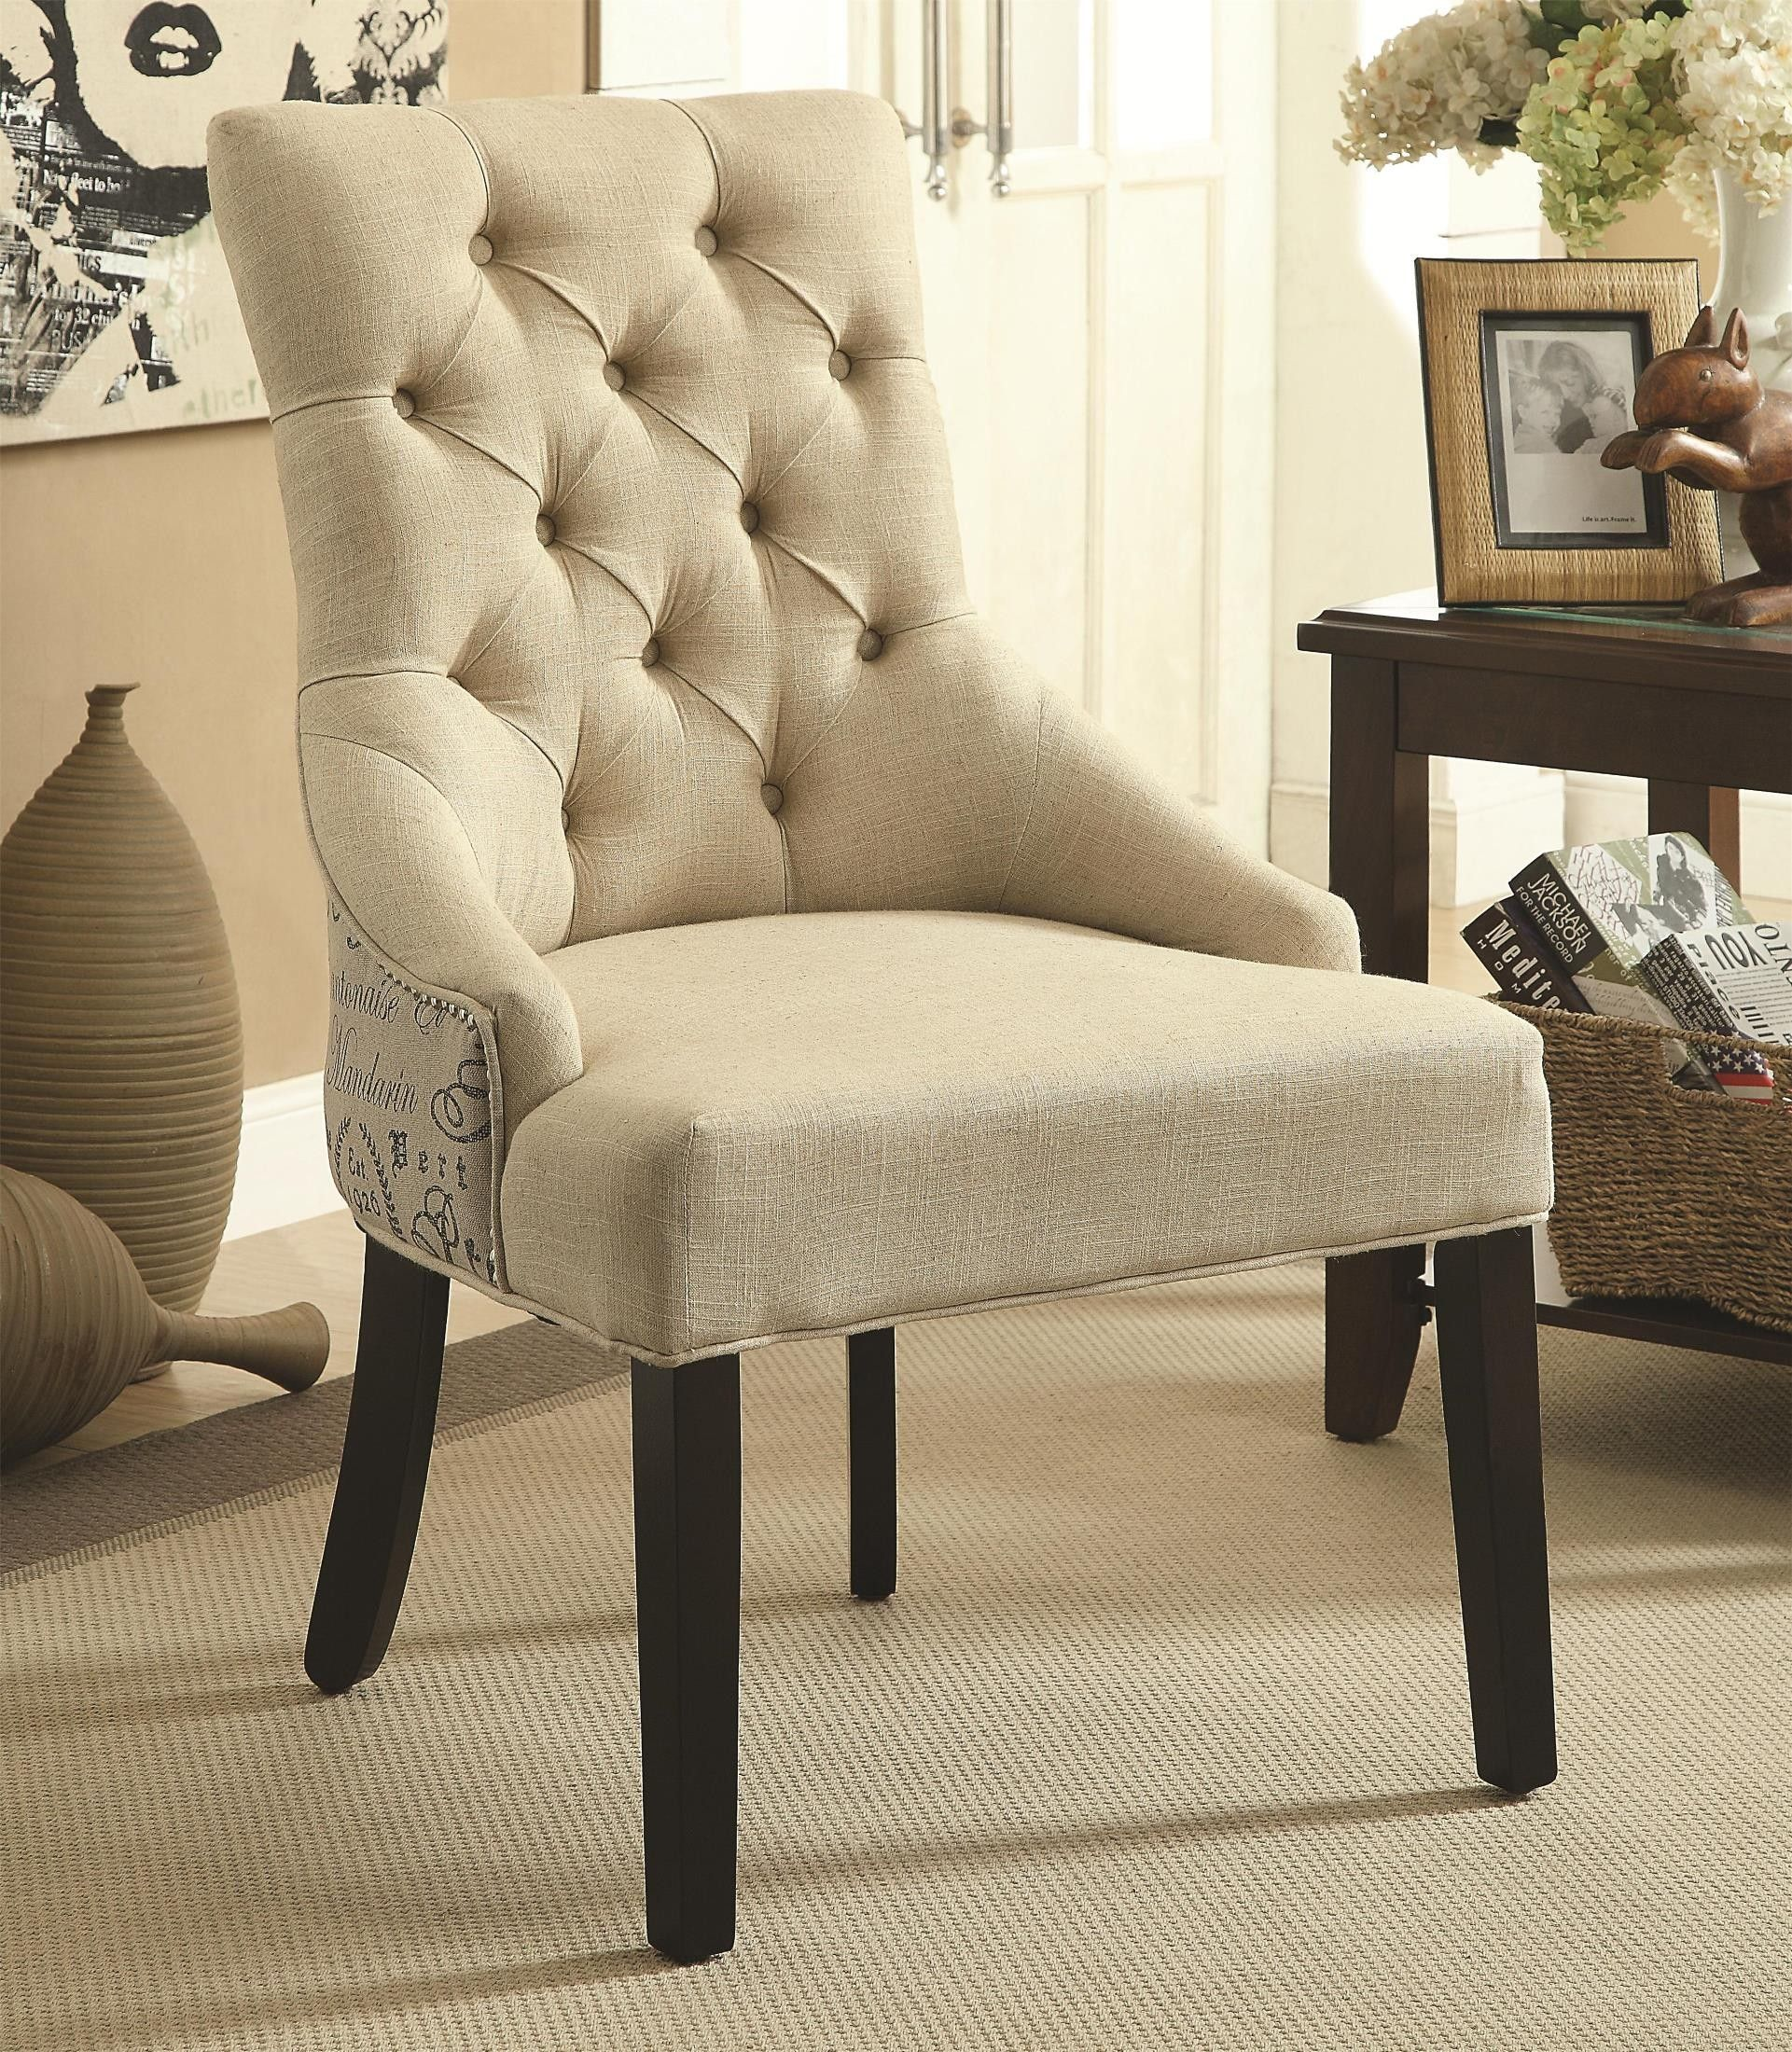 902171 Tufted Accent Chair Set of 2 Accent chairs